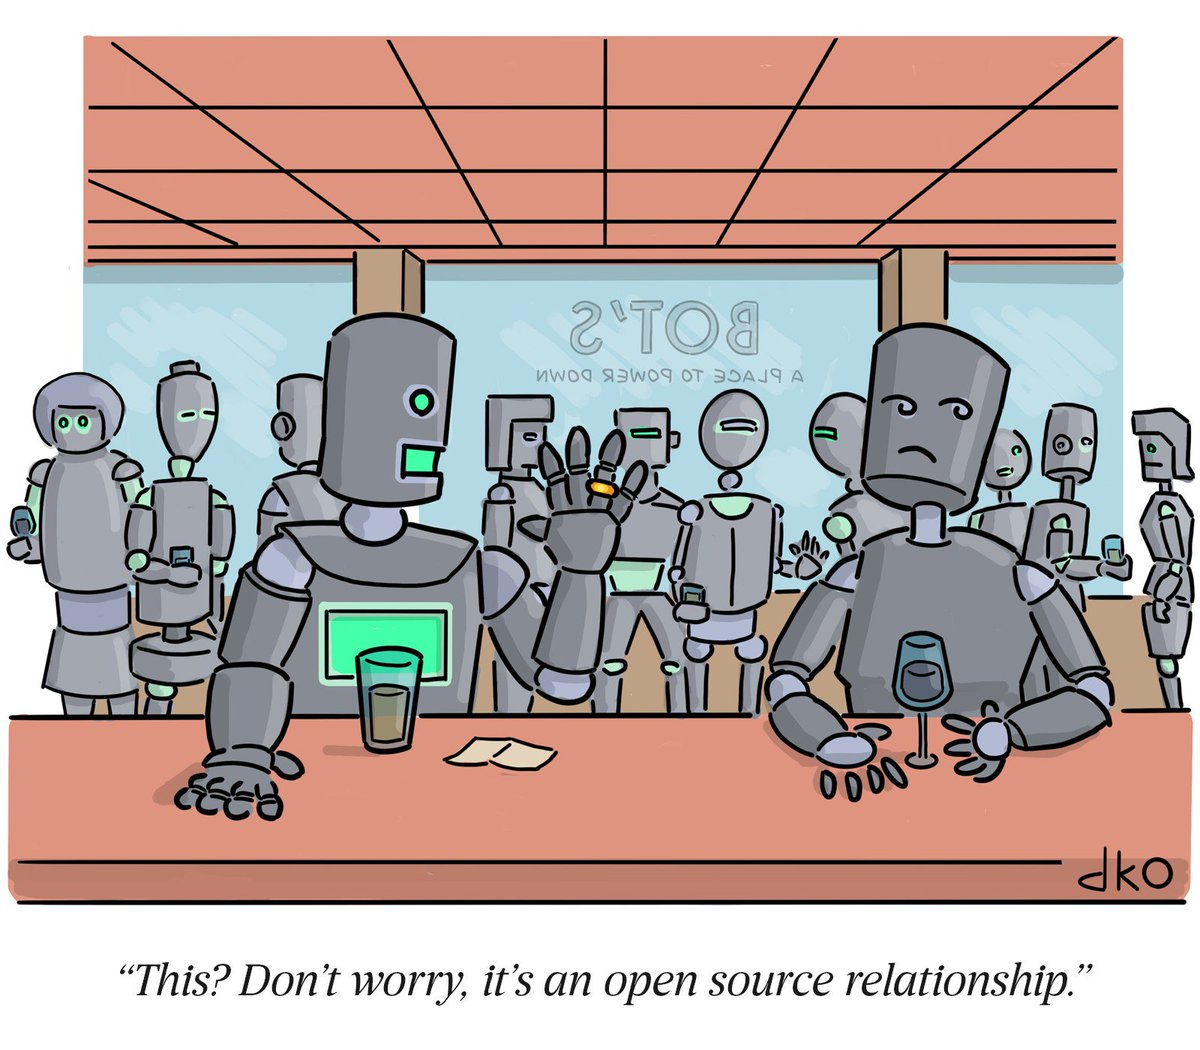 Tired: Non-monogamous  Wired: Open Source  By David Ostow with @collectcartoons